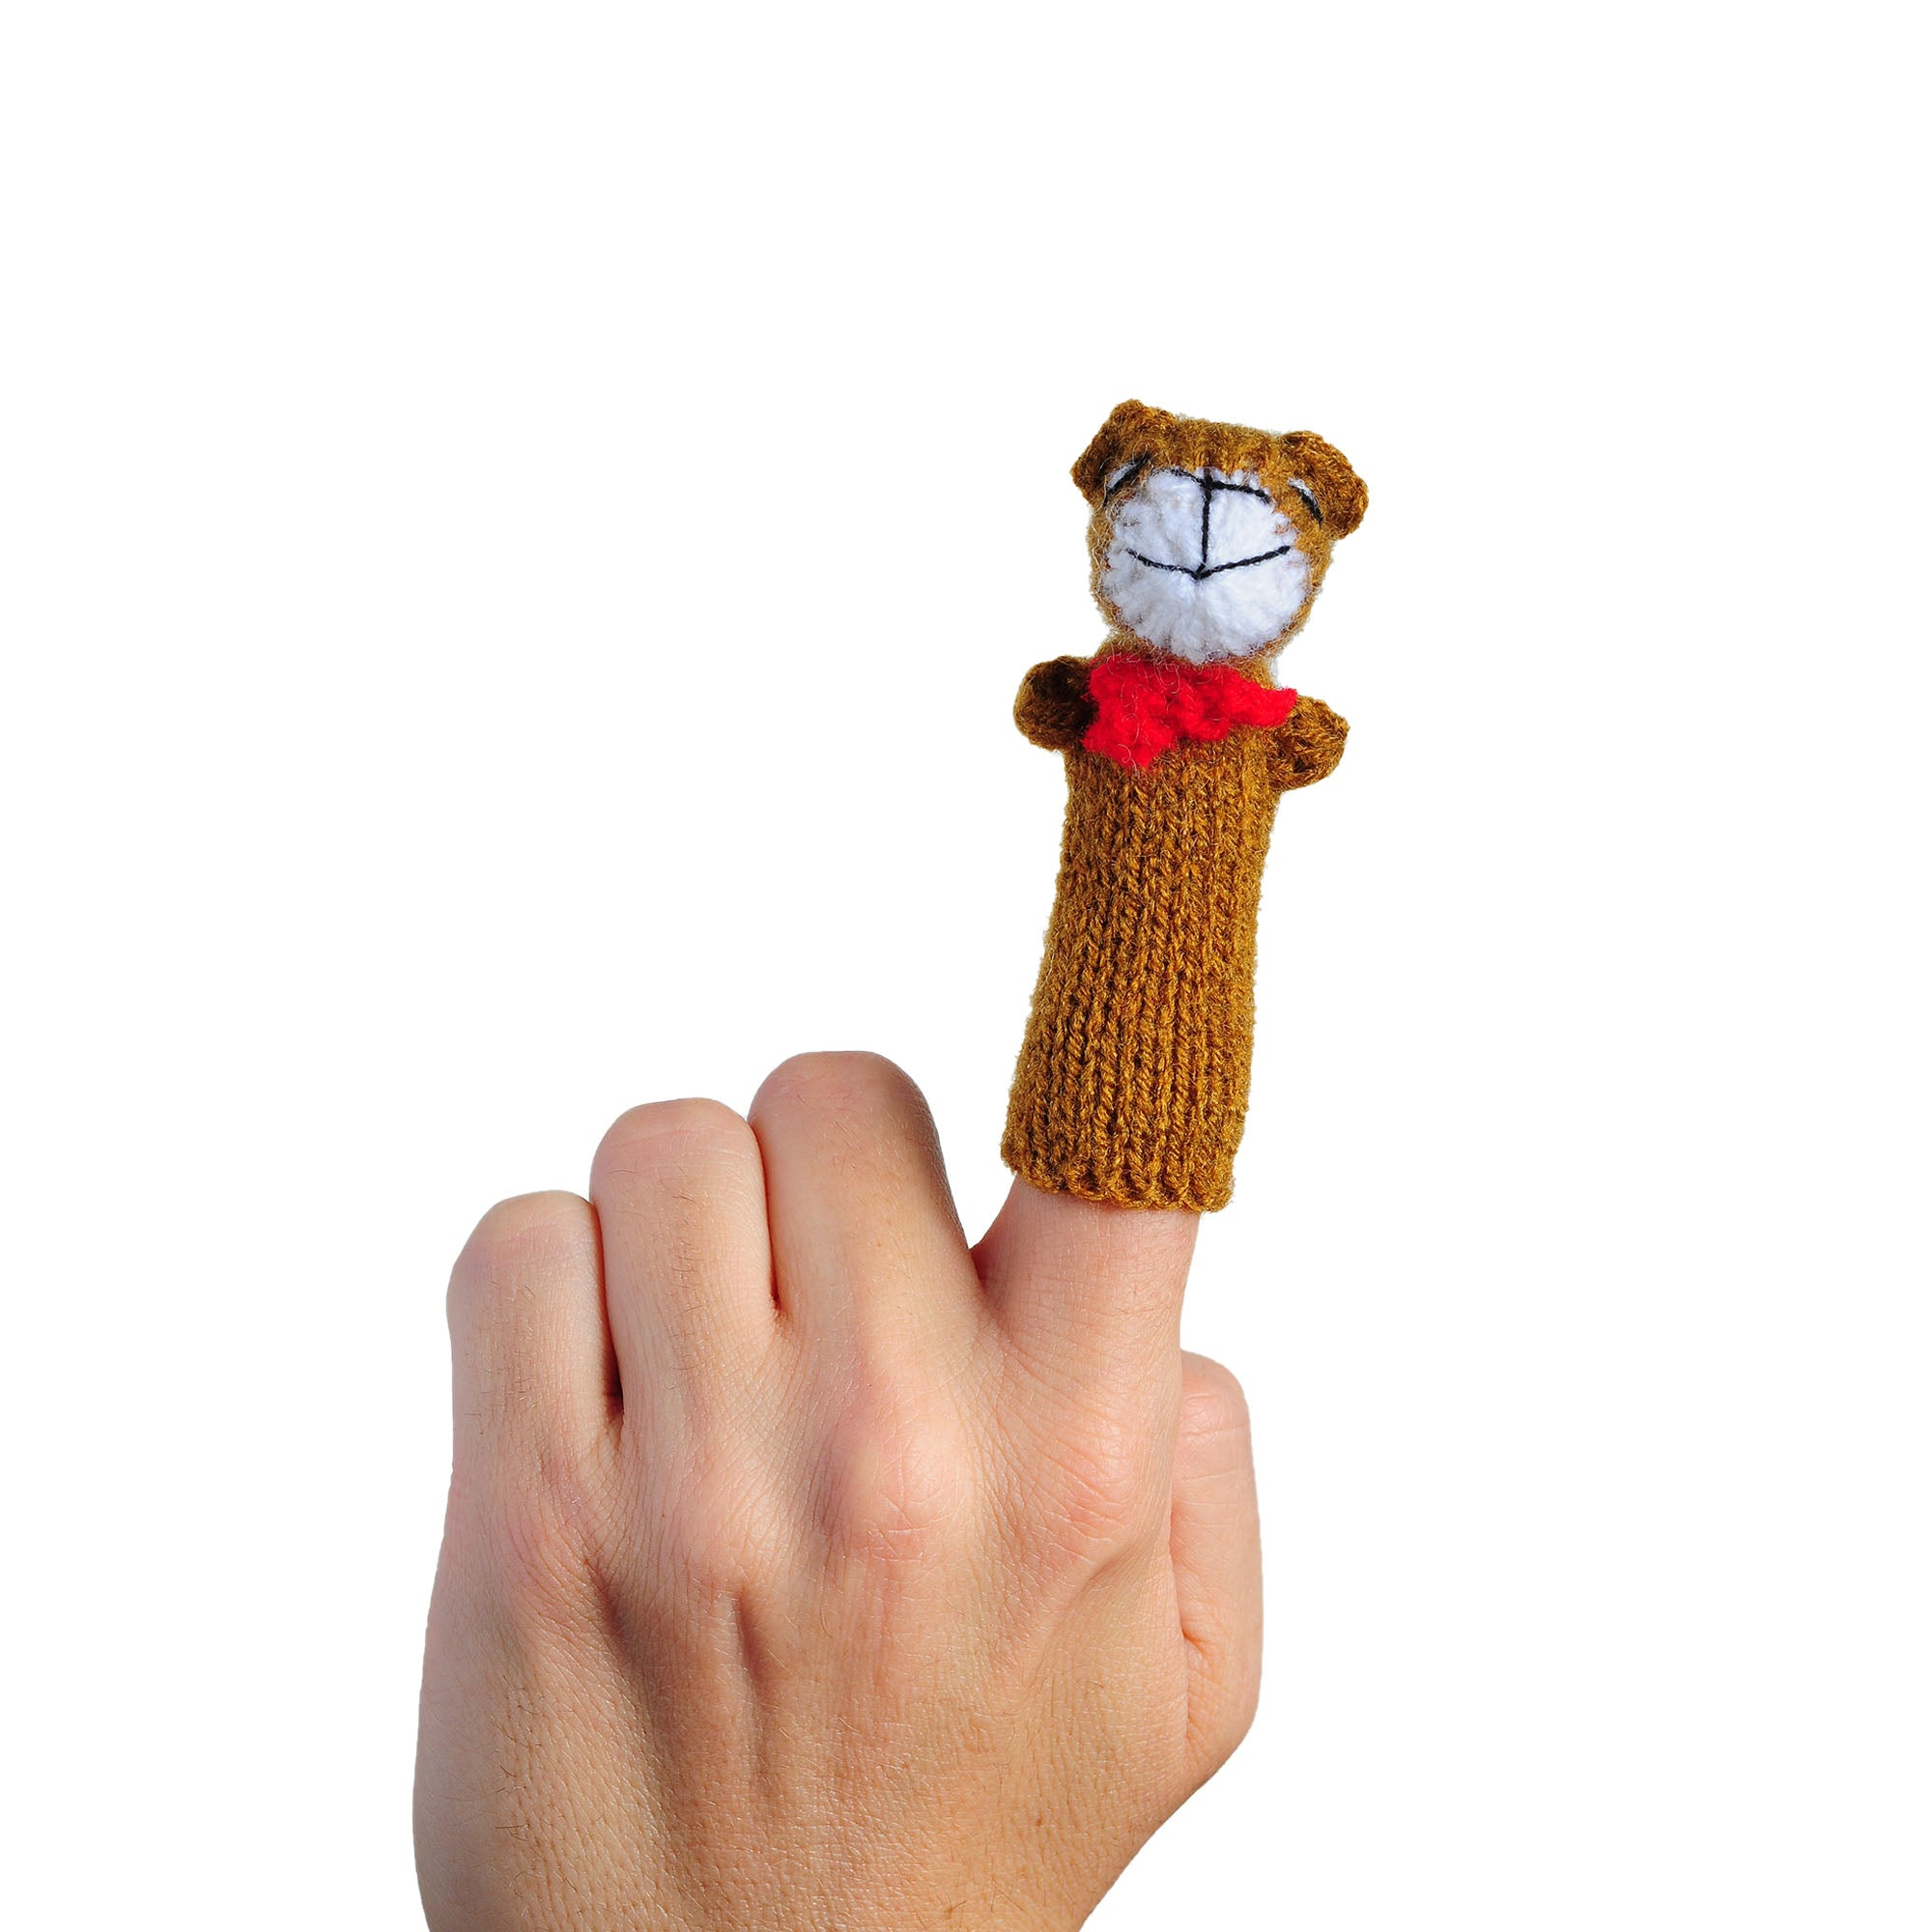 teddy bear finger puppet on a person's finger